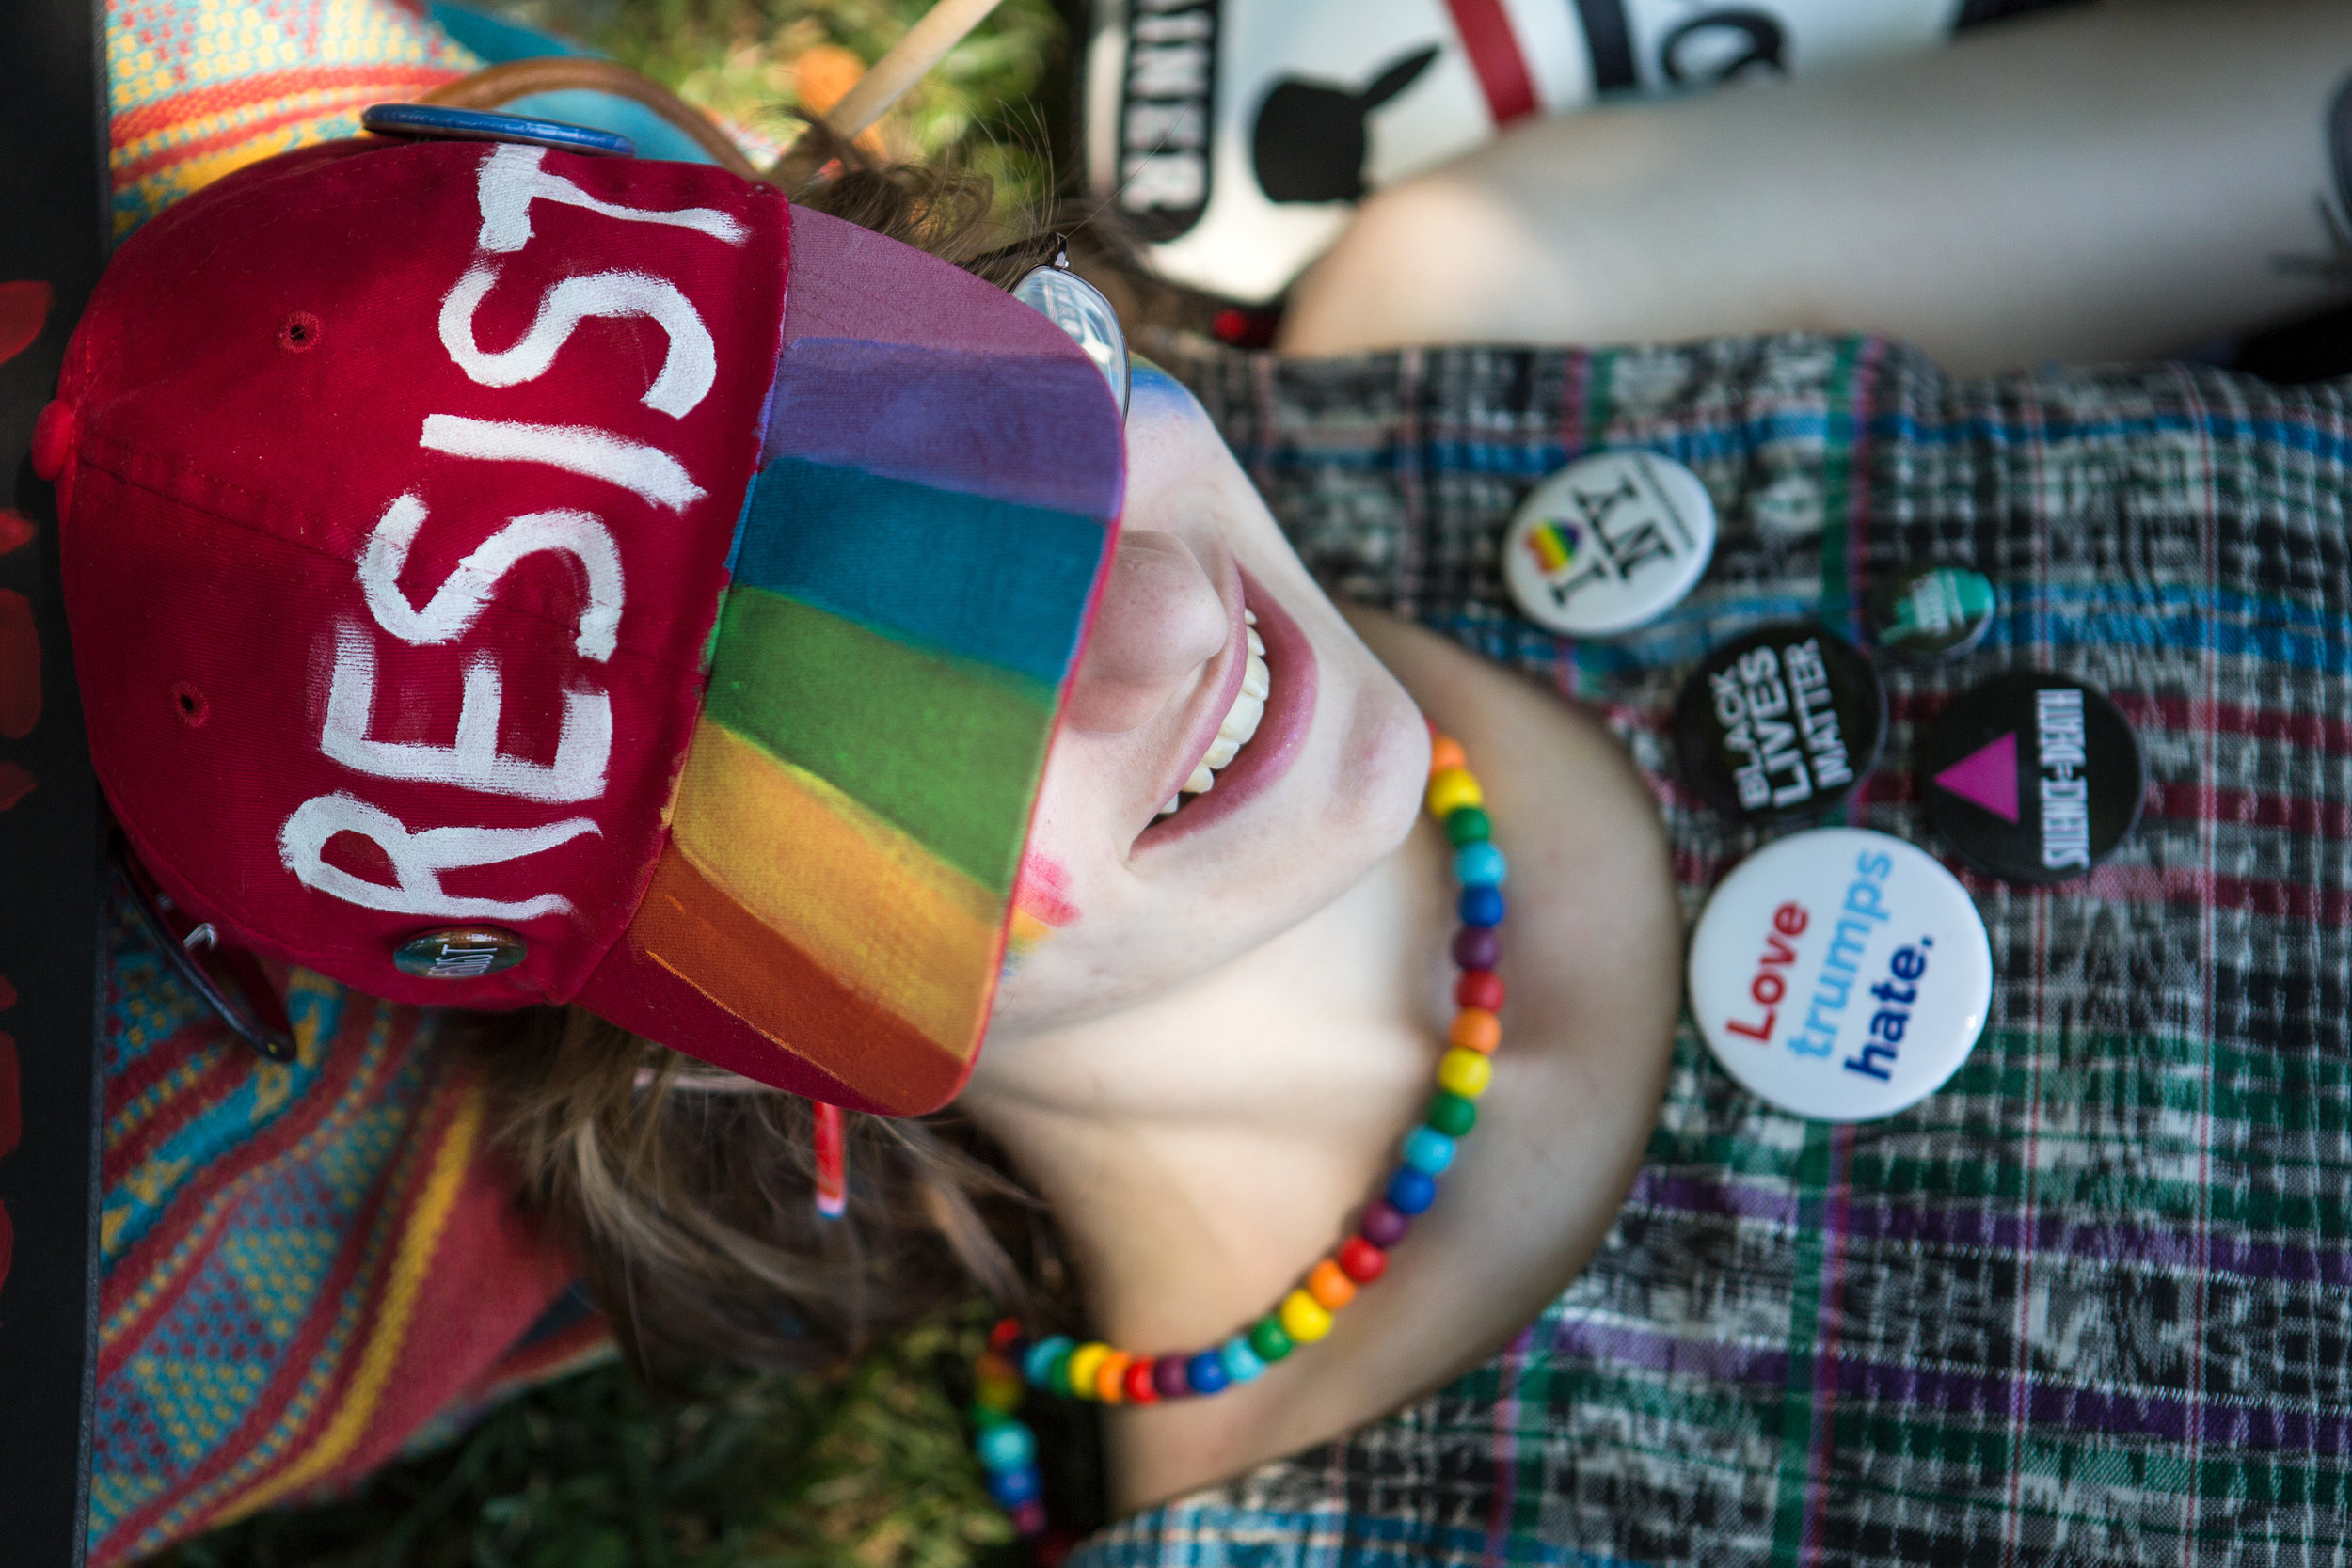 Sarah Corwin of Brooklyn, NY relaxed in the shade on the National Mall during the Equality March in Washington D.C. on Sunday, June 11. (Photo: Liam James Doyle/NPR)